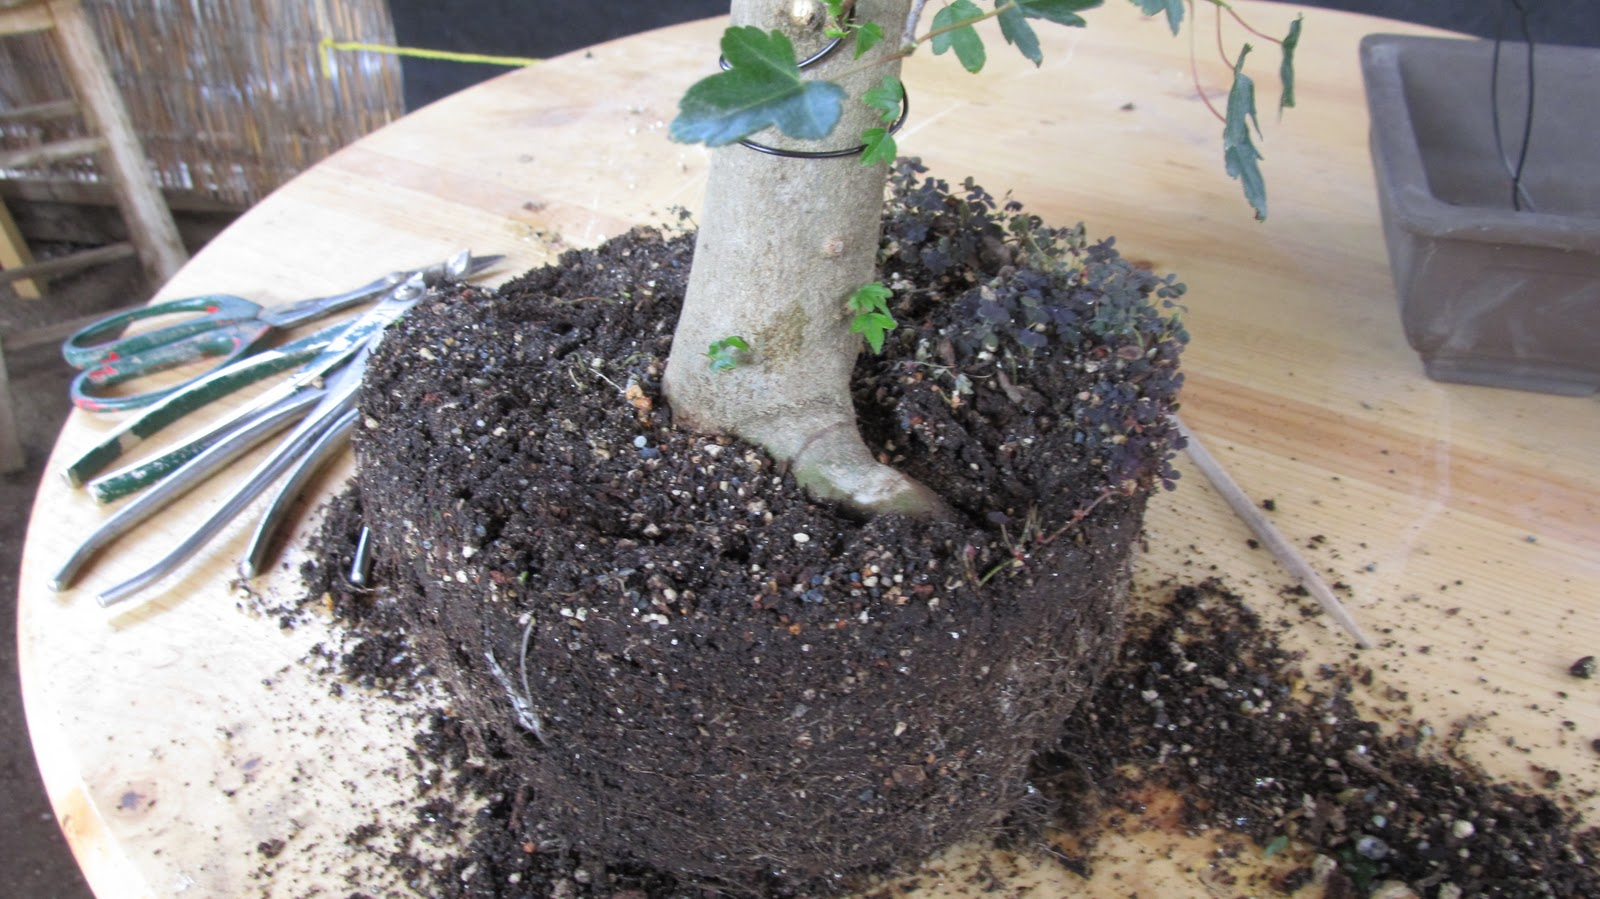 Bonsaibp39s Bonsai Blog Transplanting Into A Bonsai Pot The First